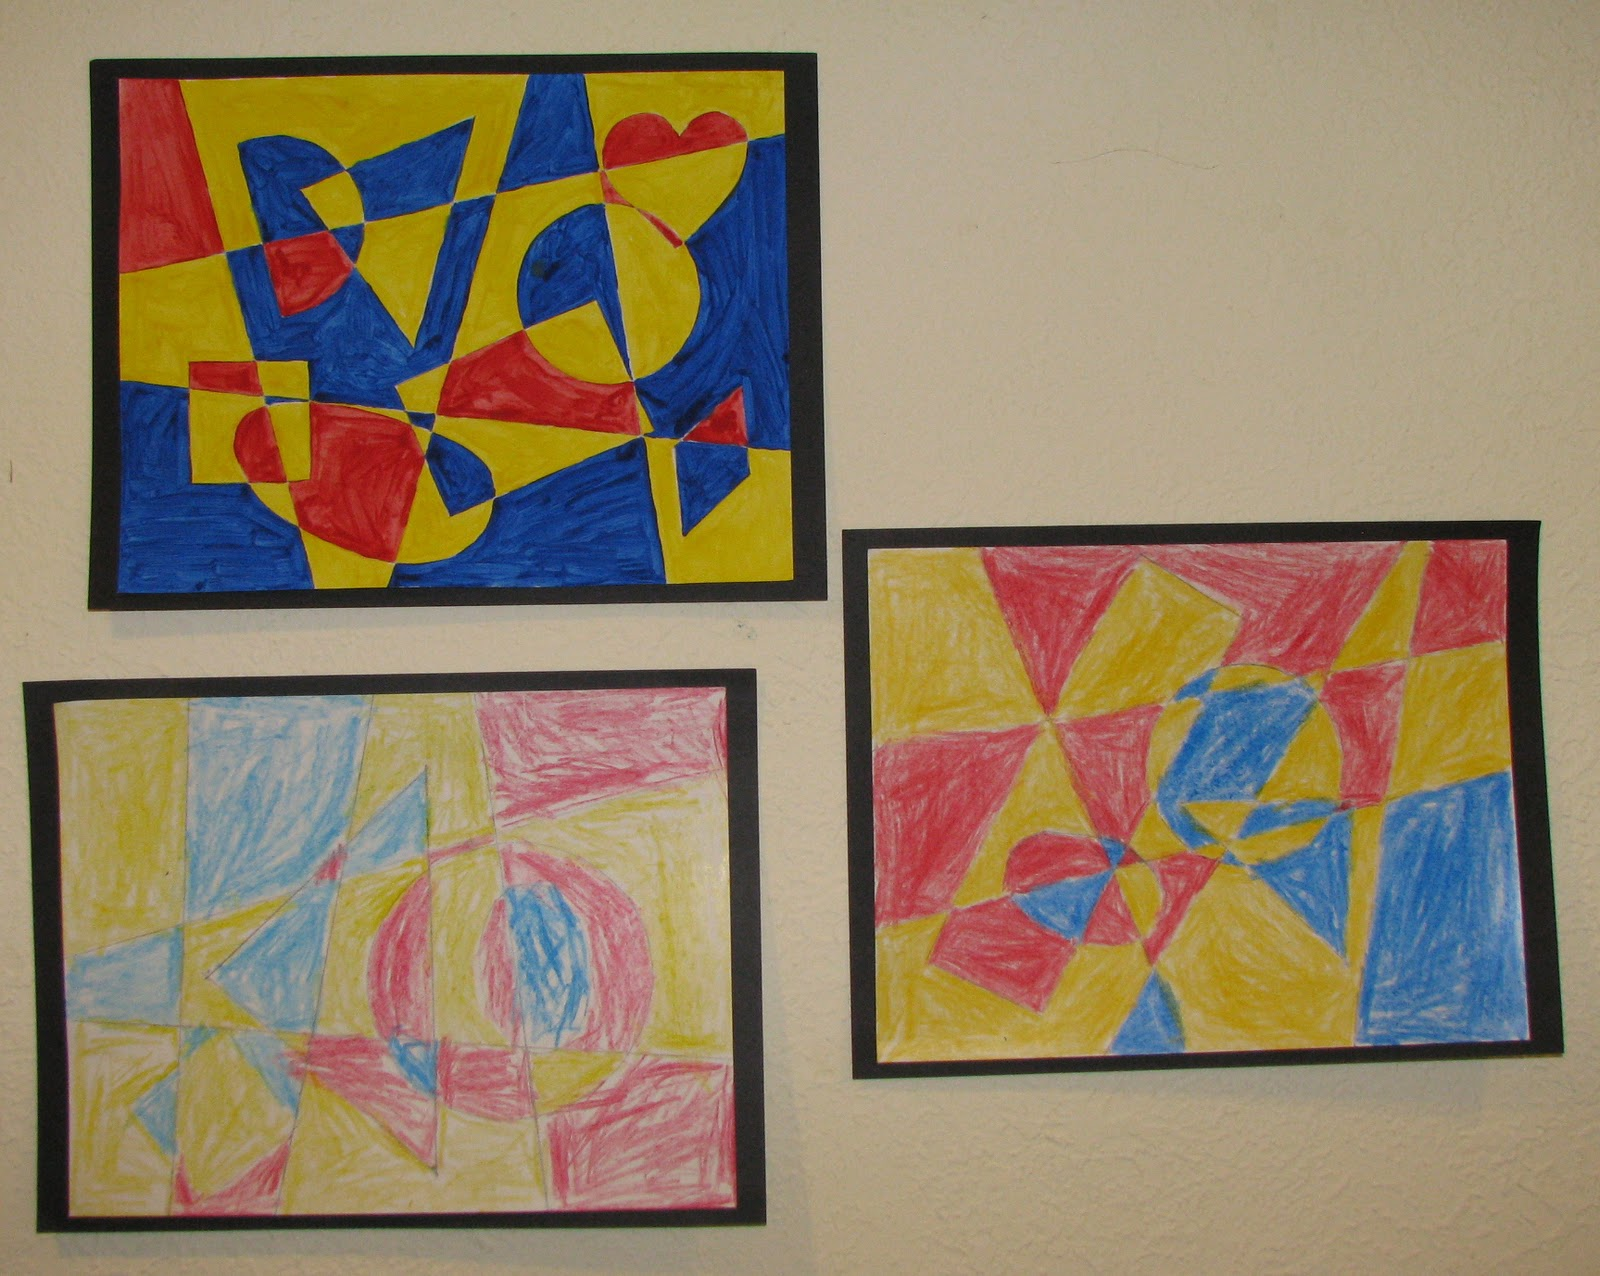 Love2learn2day february 2011 for Artists who use shapes in their paintings